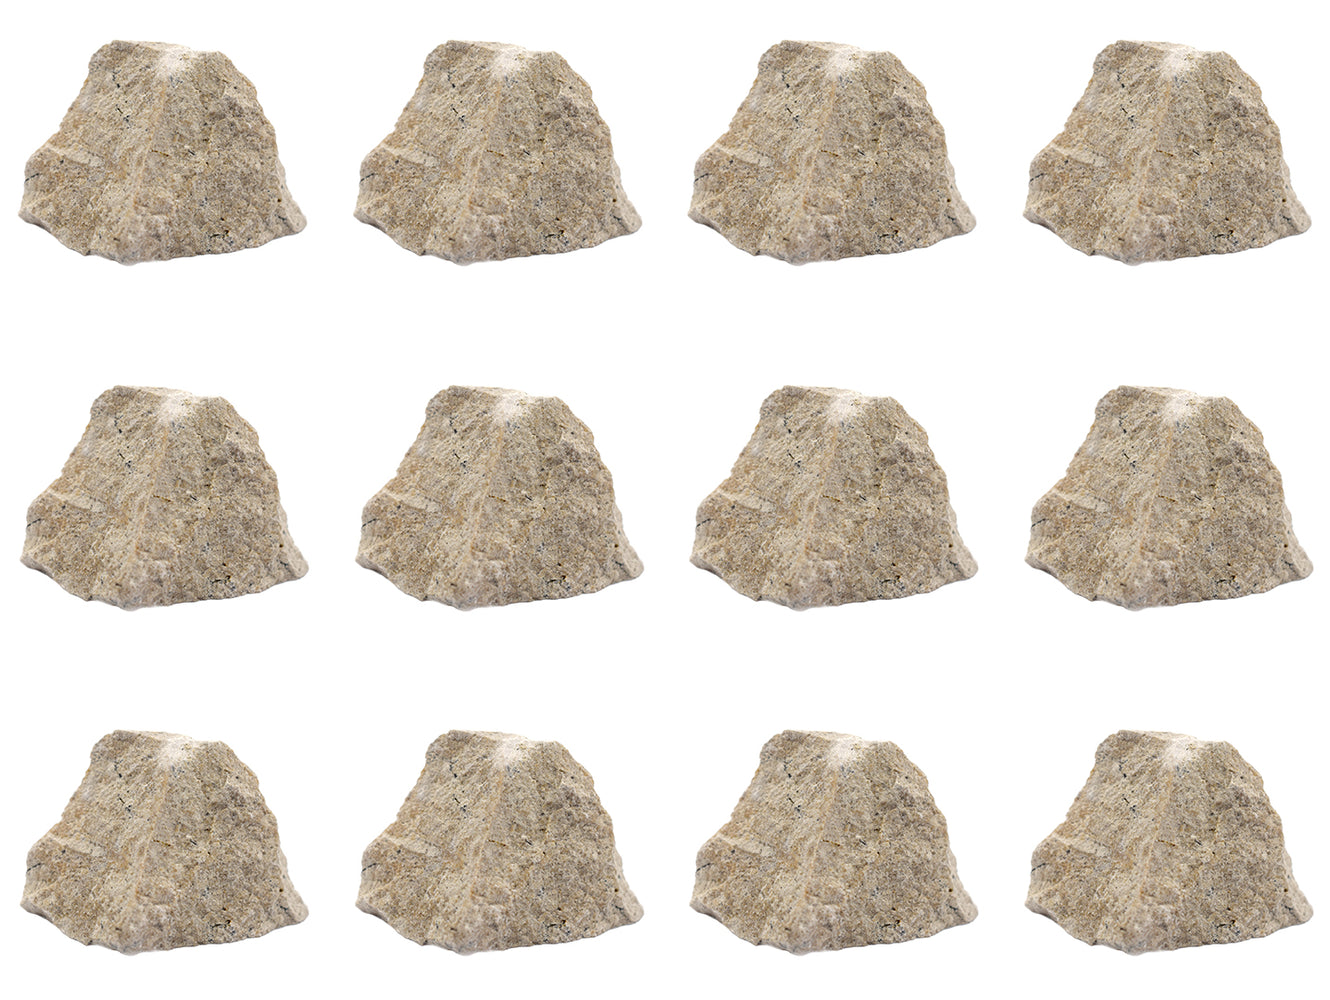 "12PK Raw Travertine, Sedimentary Rock Specimens - Approx. 1"" - Geologist Selected & Hand Processed - Great for Science Classrooms - Class Pack - Eisco Labs"